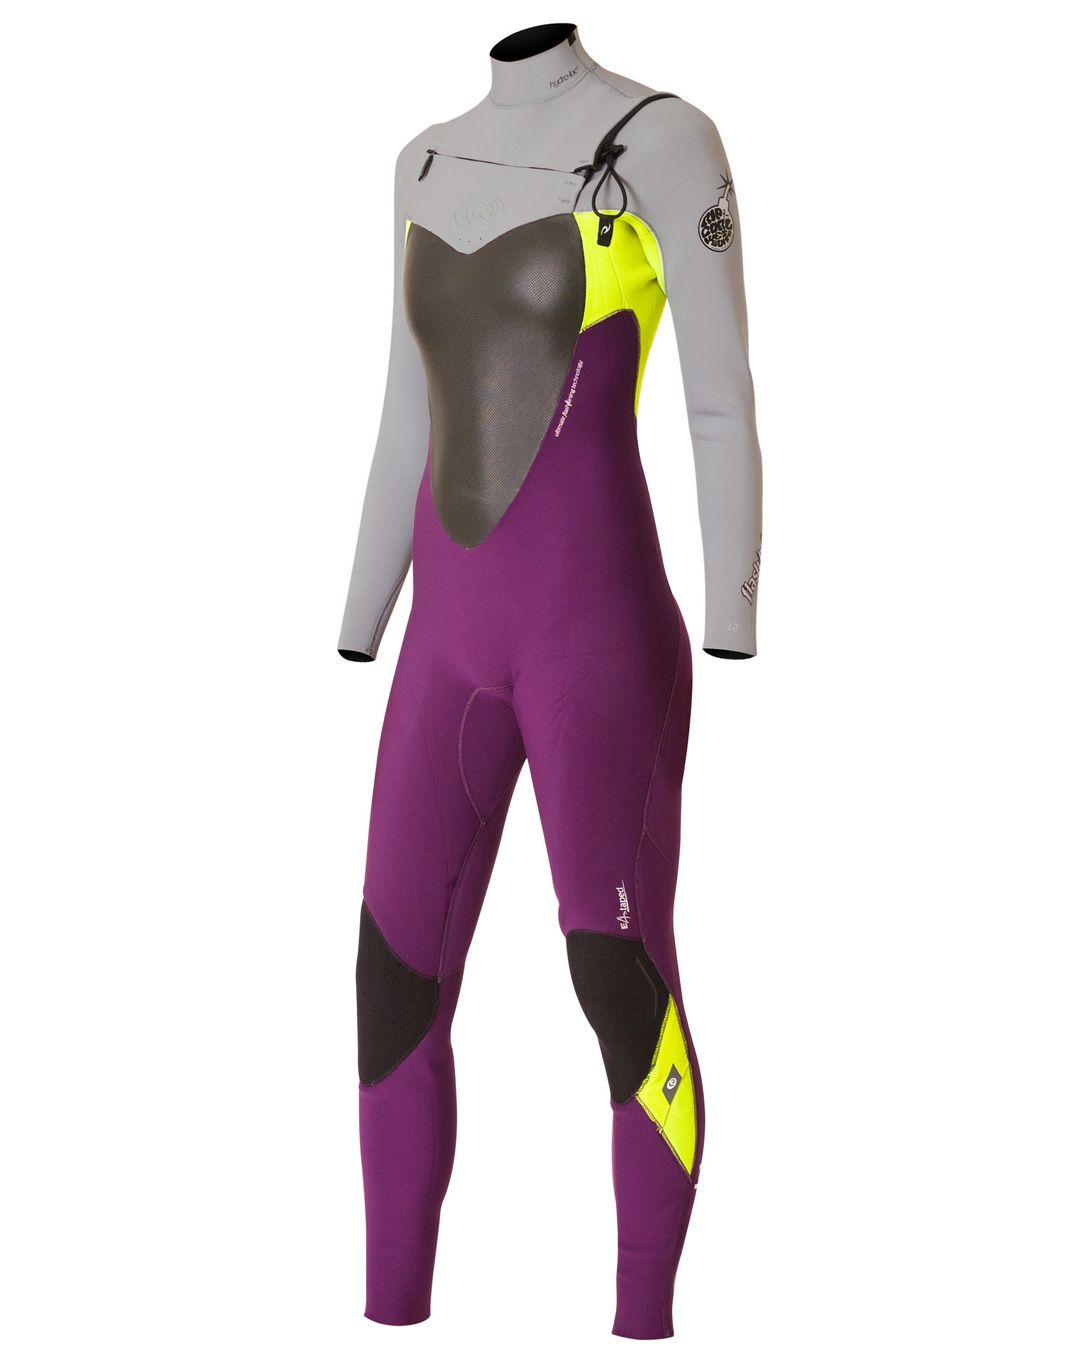 WMNS.FLASHBOMB 53GB CZ ST - 100% NEOPRENE - Rip Curl Europe ... f308fca64